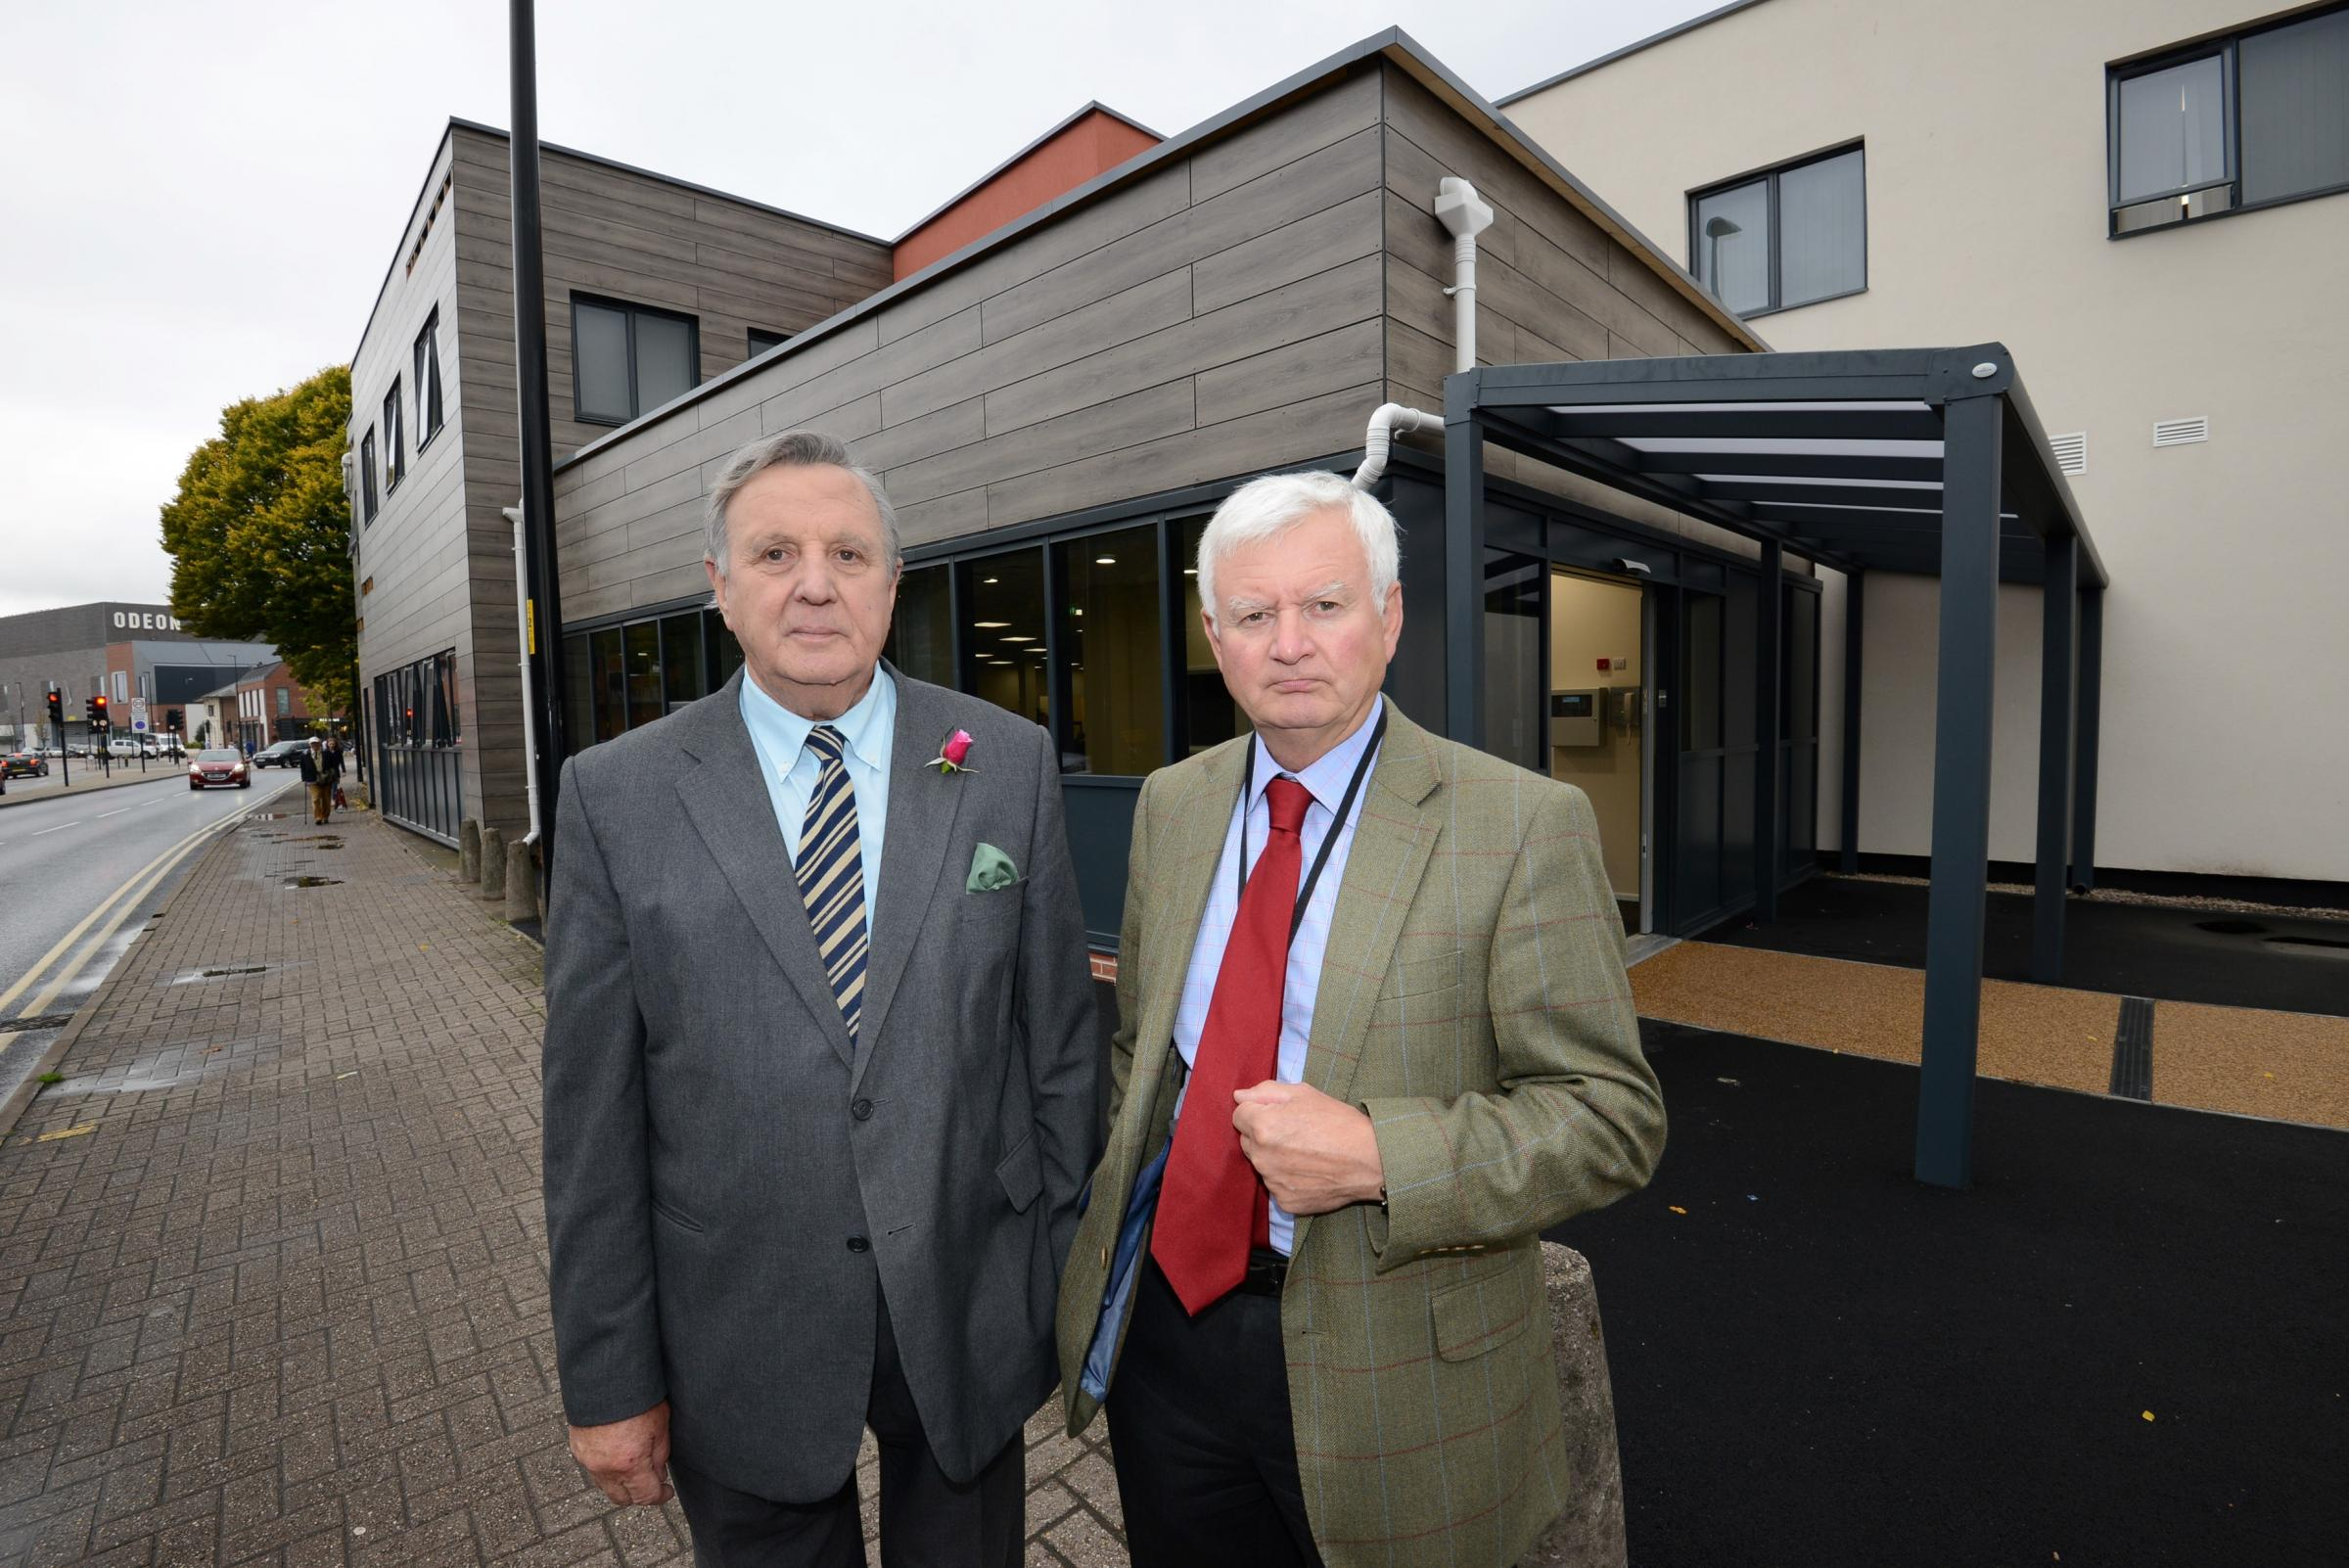 from left: Independent Councillors Bob Matthews & John Hardwick outside Blueschool House which has just undergone a renovation costing nearly £2 million, around £1 million over budget. Blueschool Street, Hereford. 1738_1001.